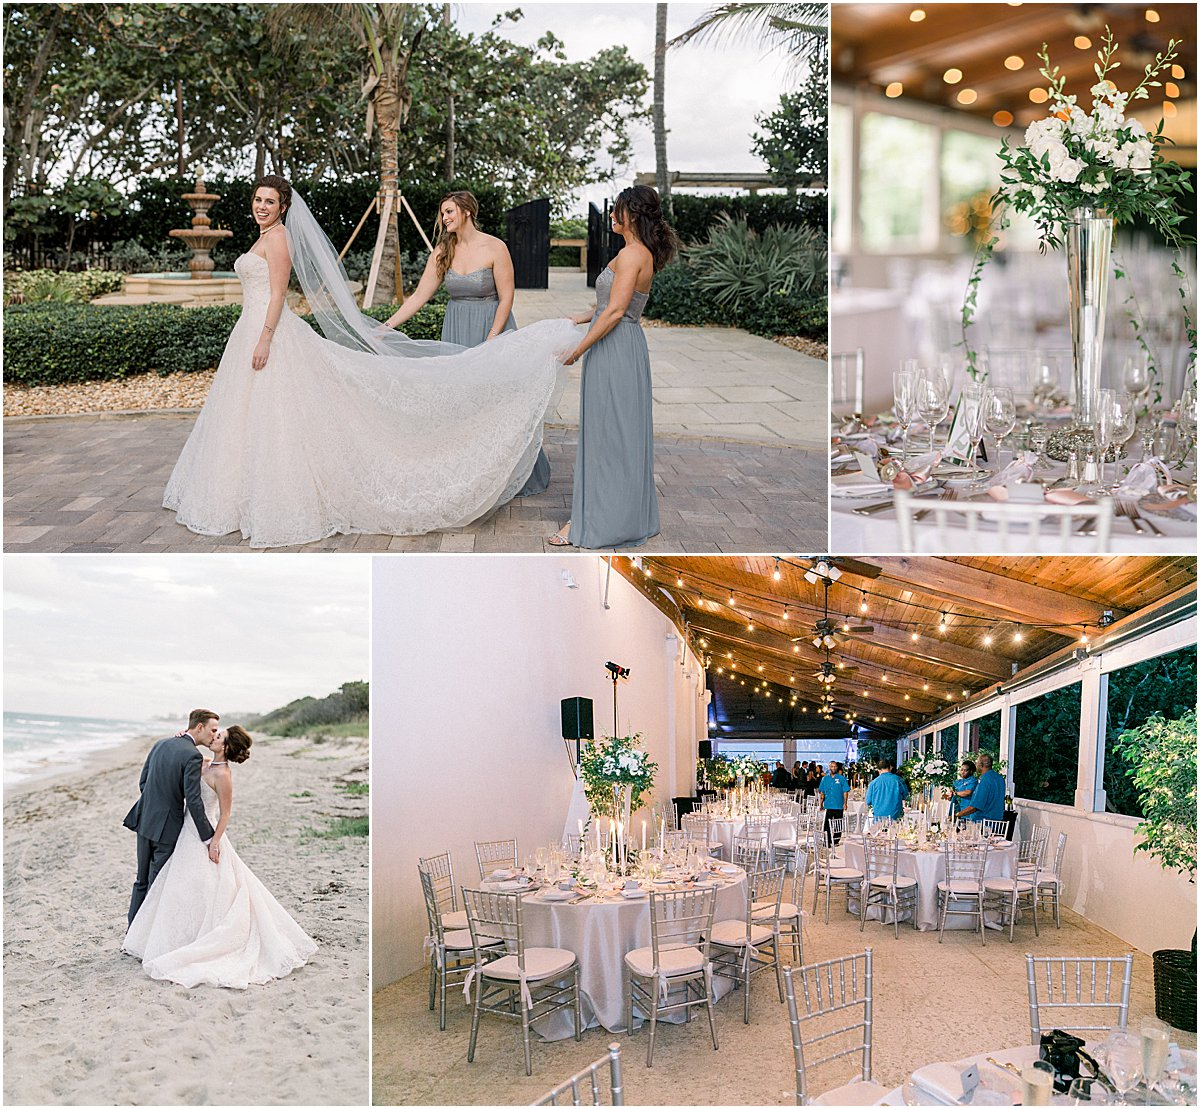 Couple S Wedding Ceremony And Reception Held At The Beach: 30 Most Popular Wedding Venues Of 2018